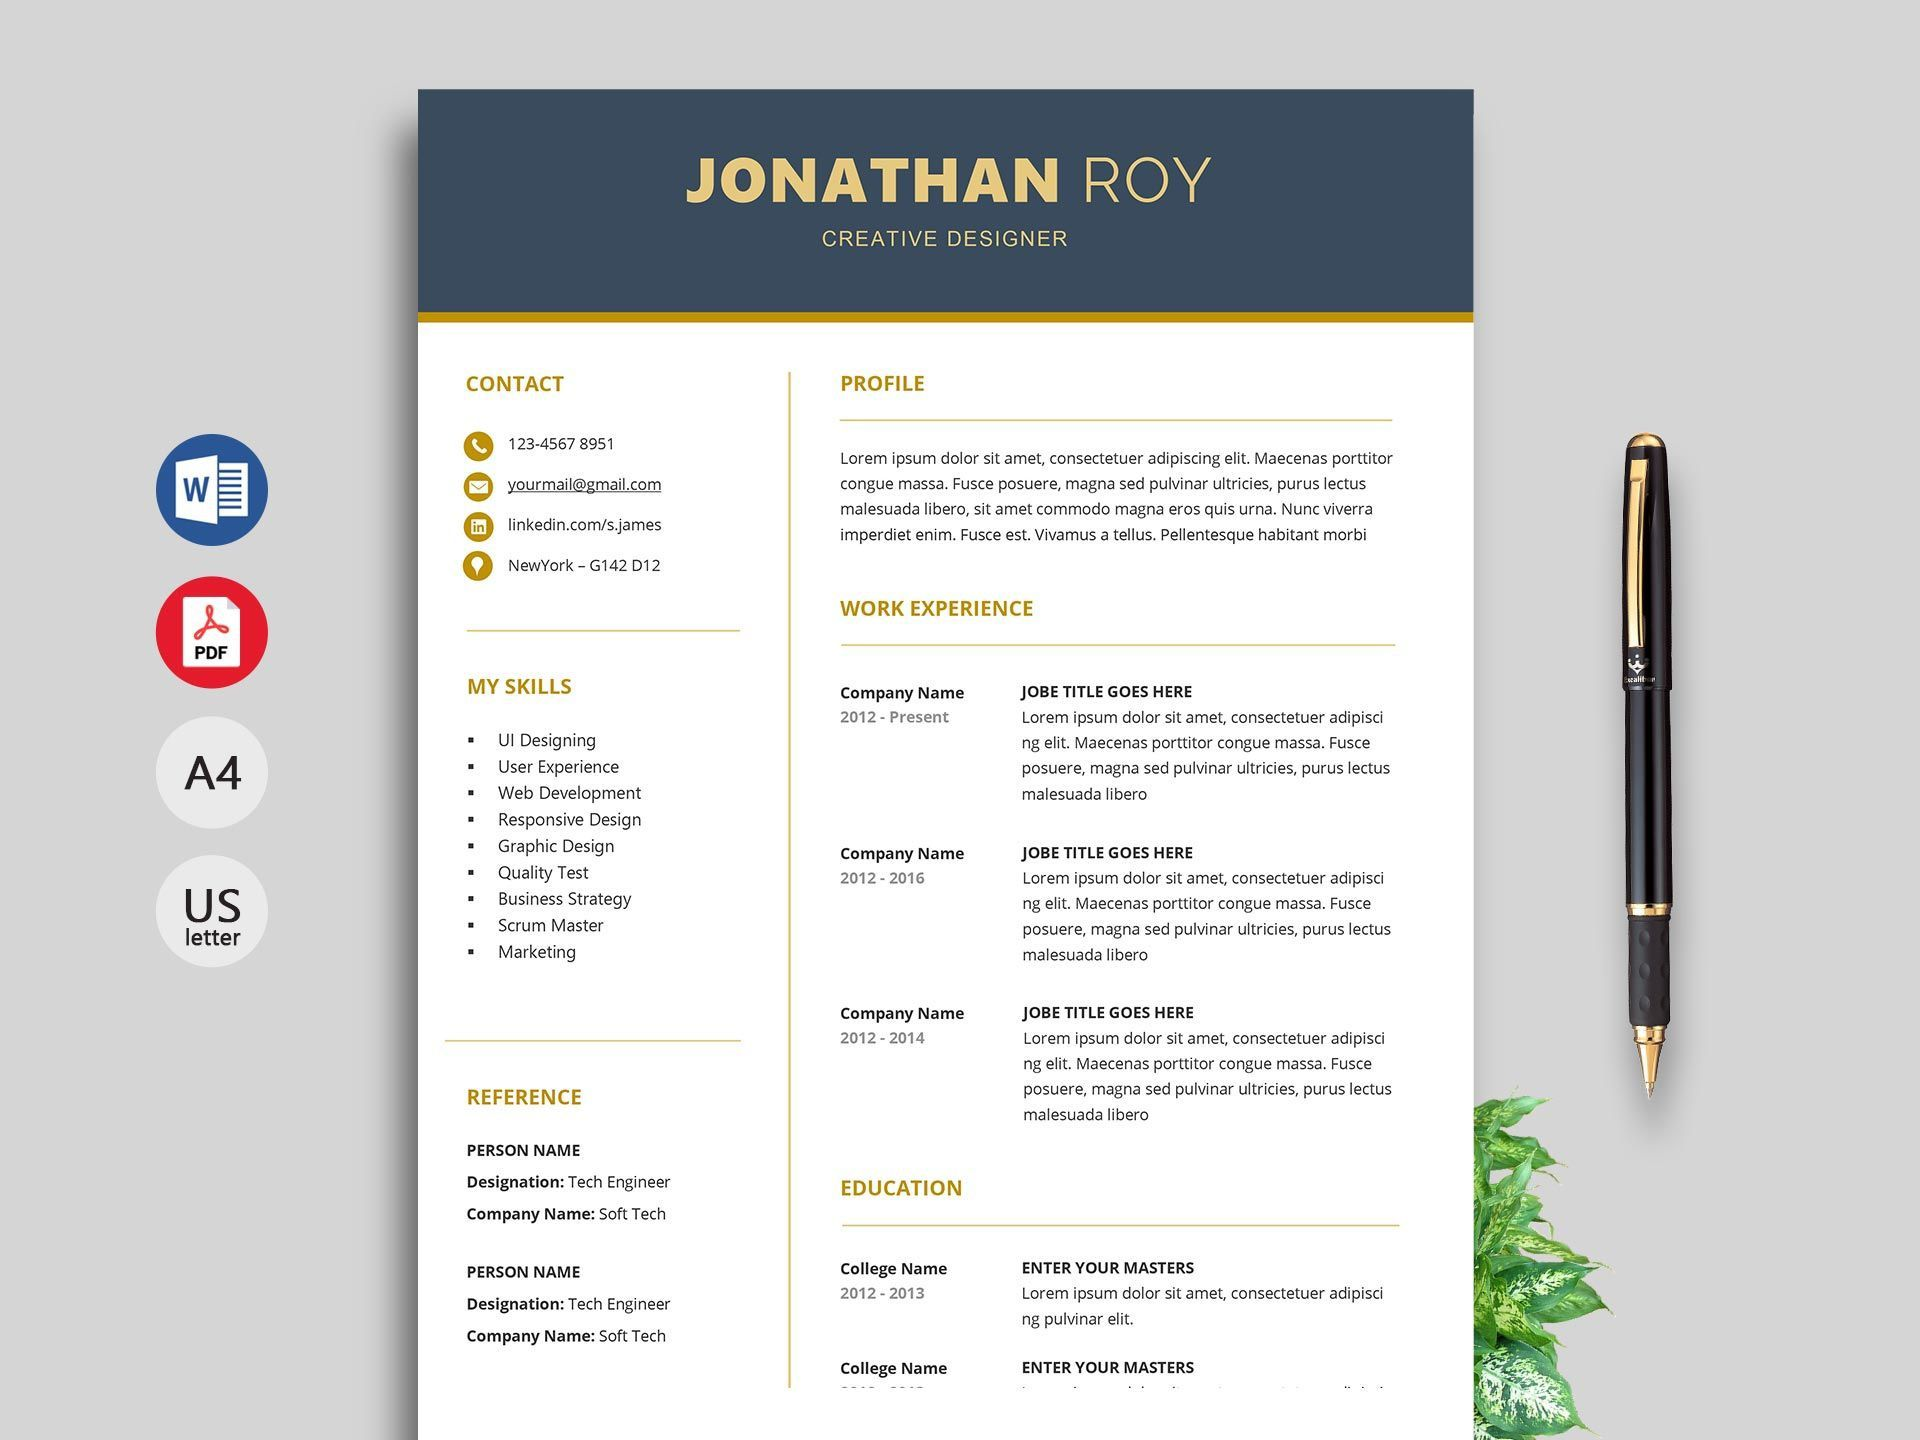 003 Unusual Professional Resume Template Free Download Word Example  Cv 2020 Format With PhotoFull